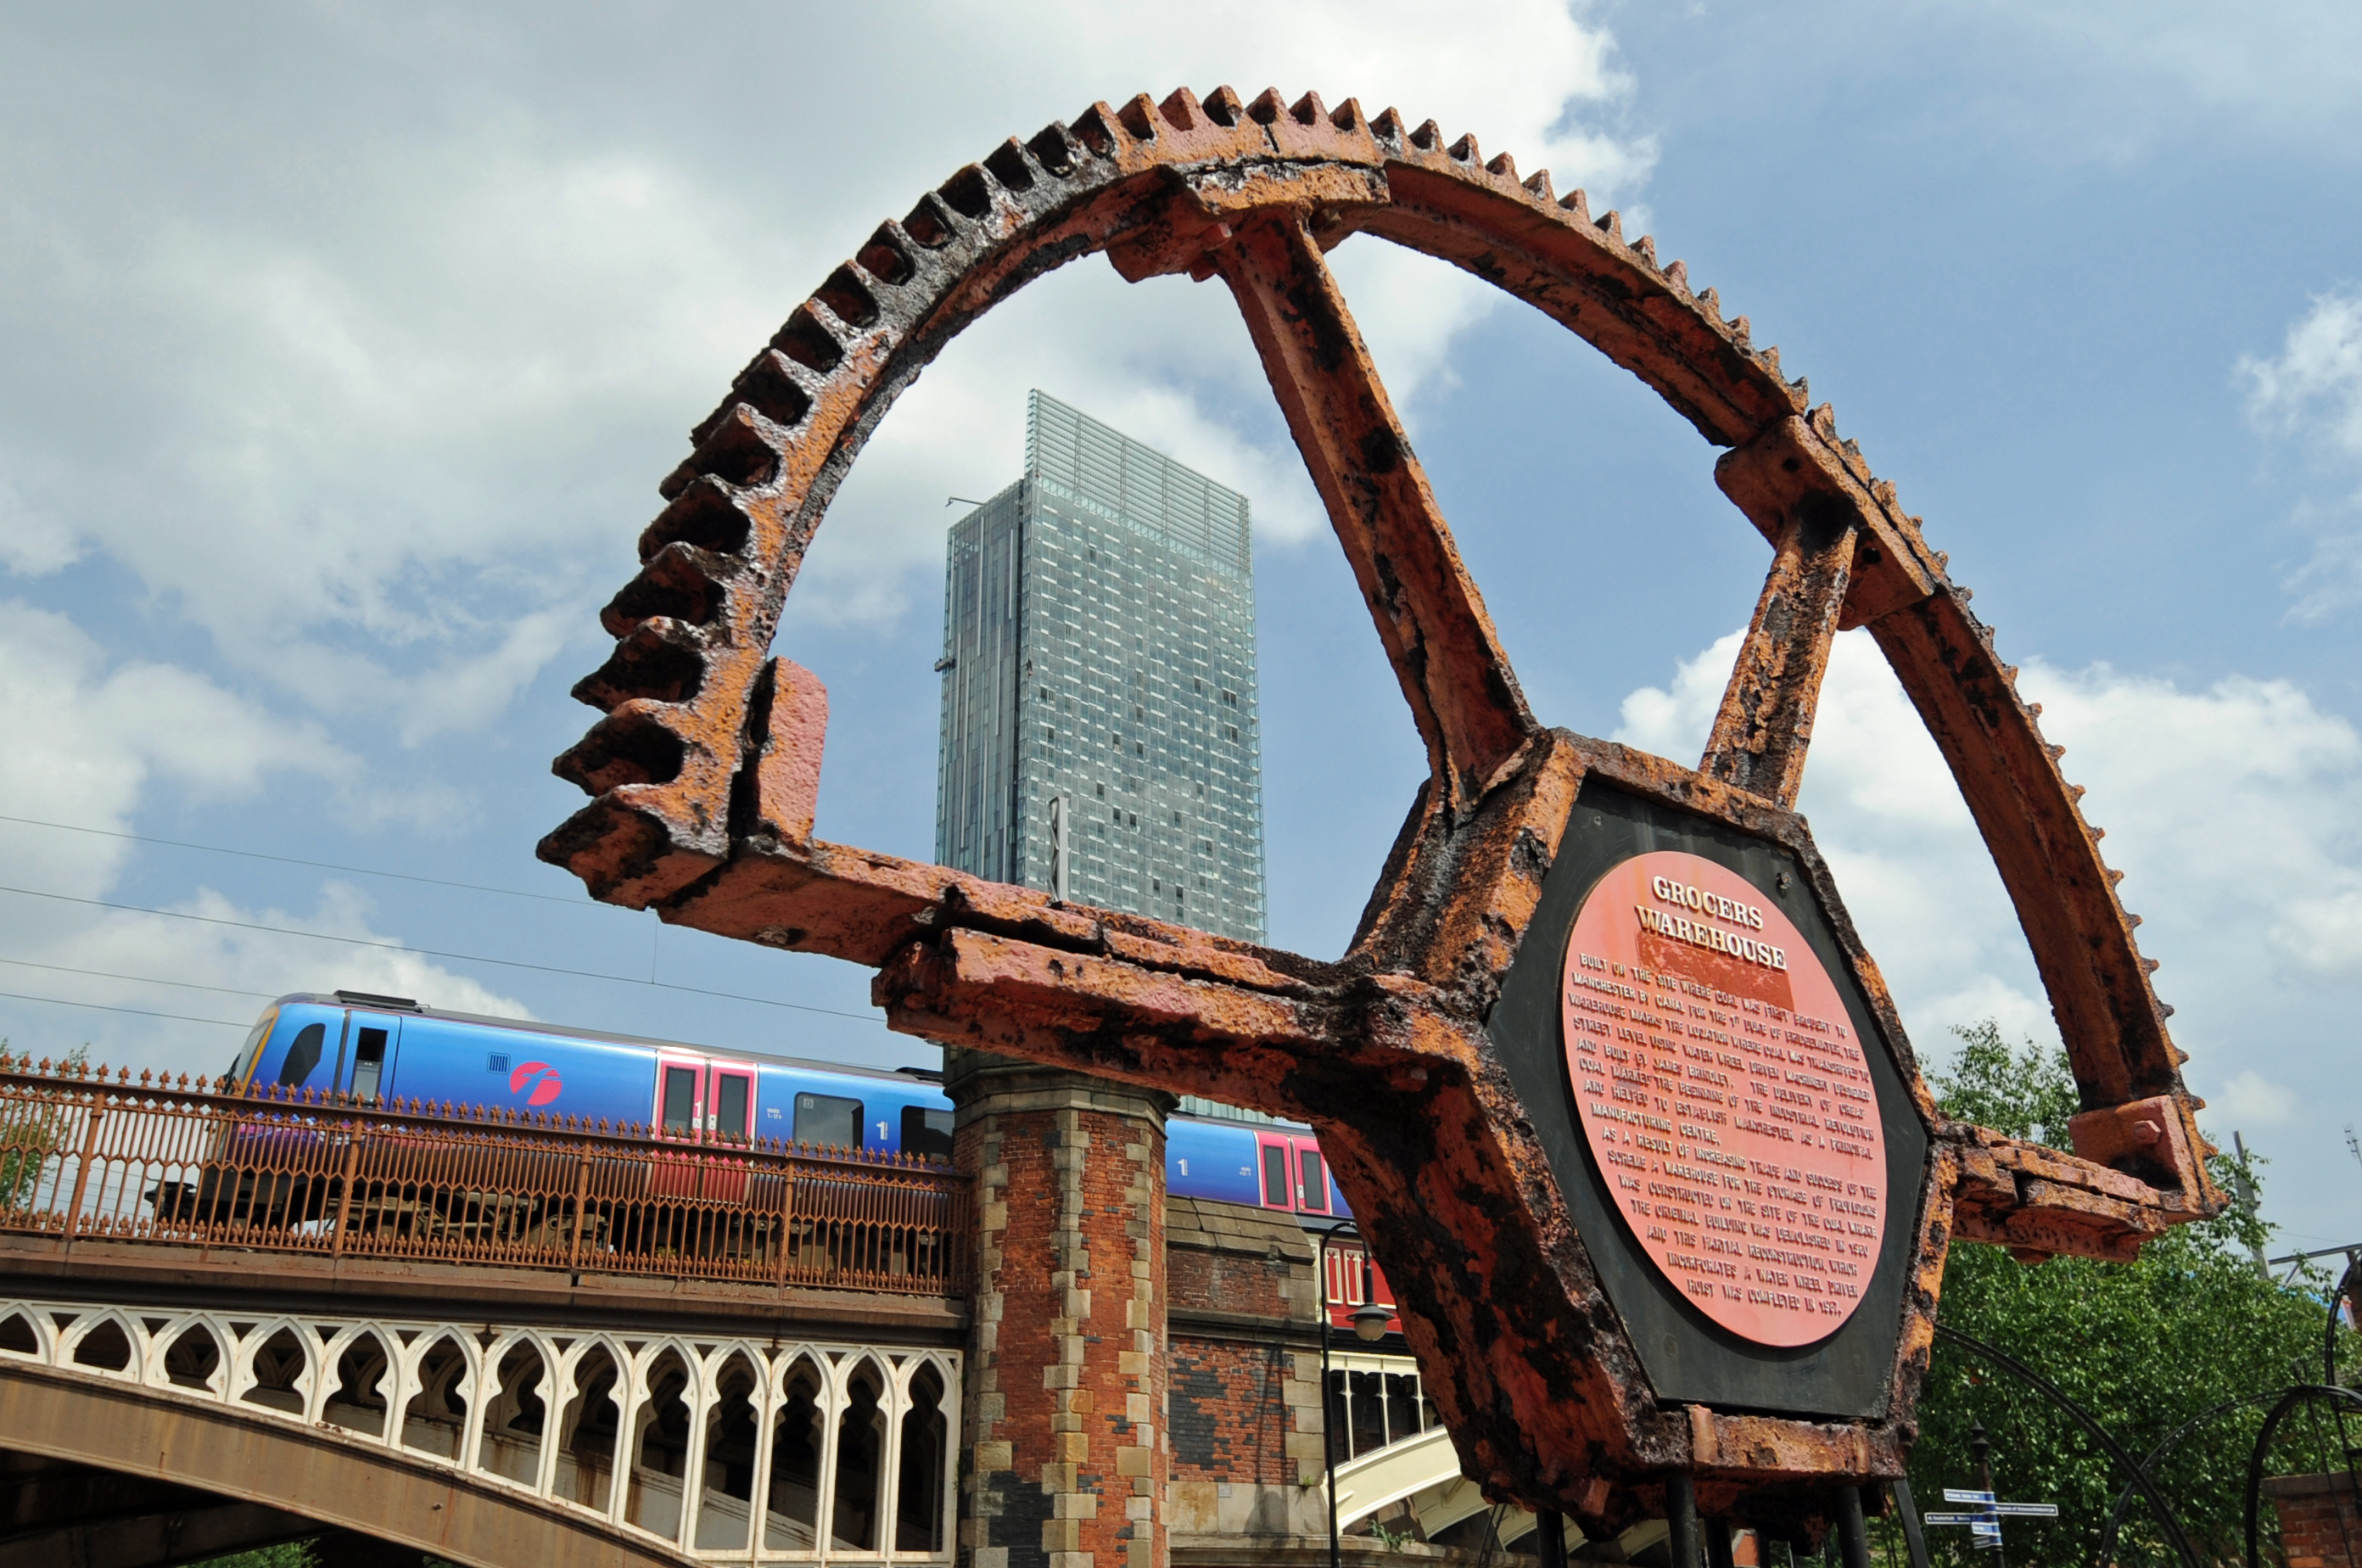 Grocers warehouse, the birthplace of the industrial revolution in Manchester